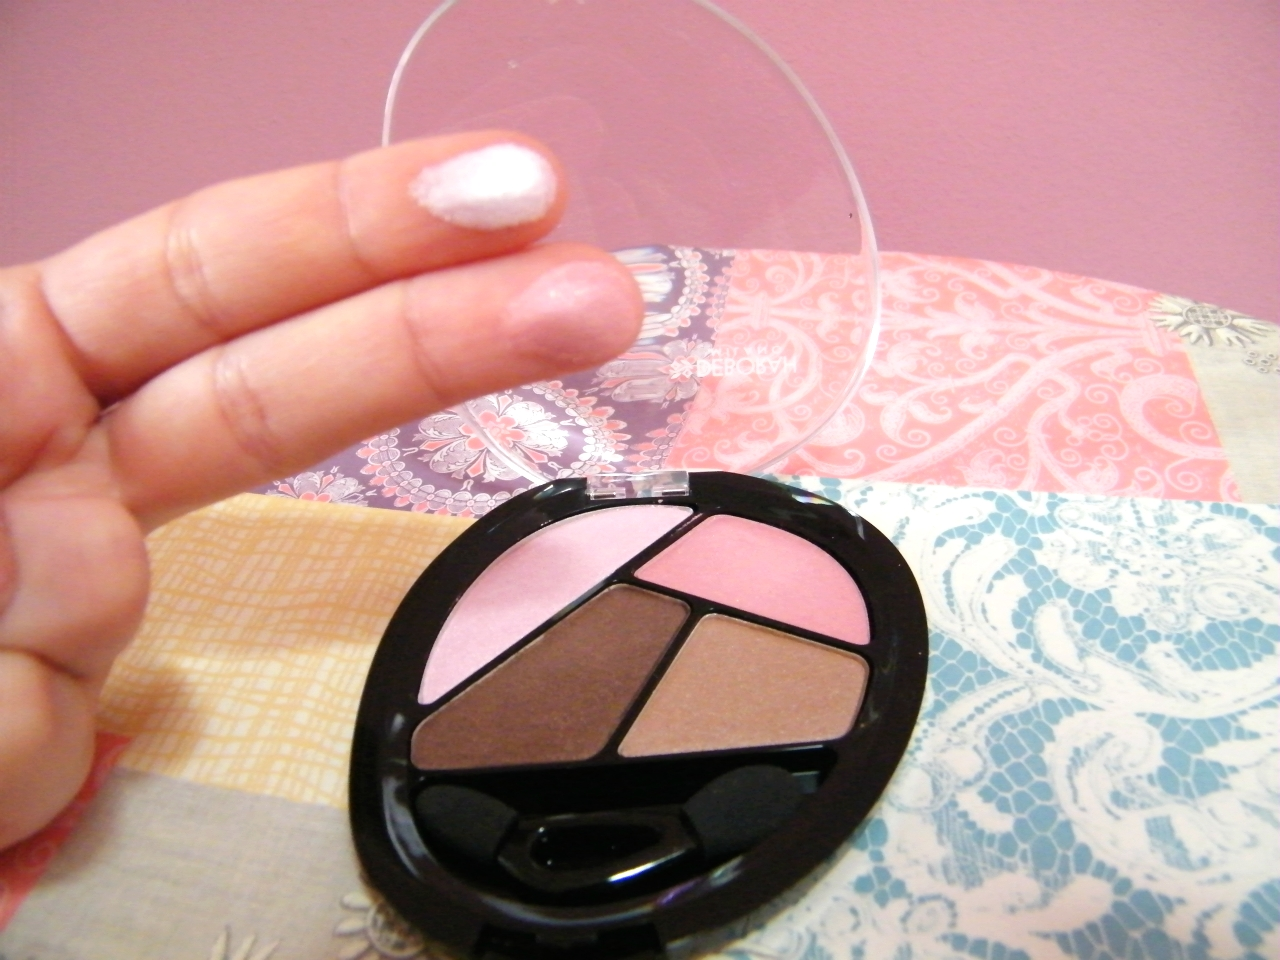 Deborah Milano Makeup Eyeshadow Quad